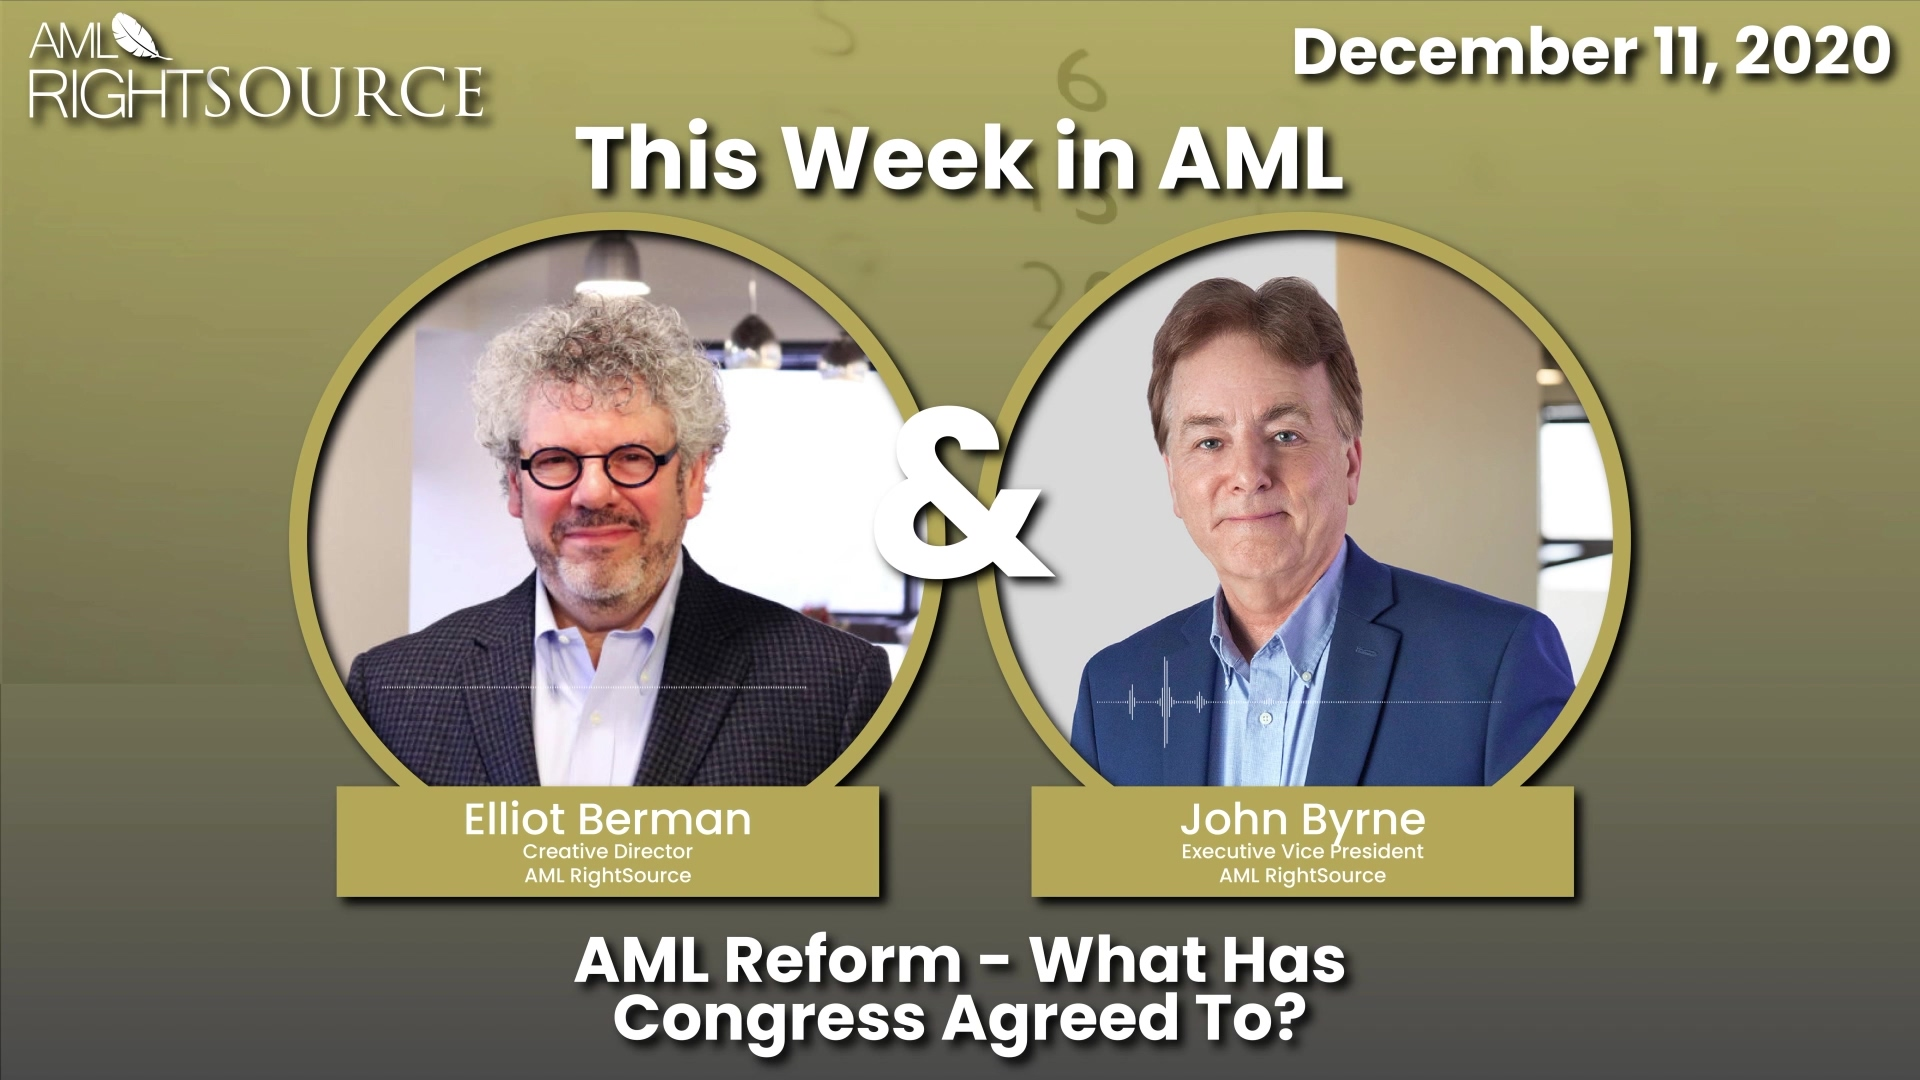 AML Reform What Has Congress Agreed To?